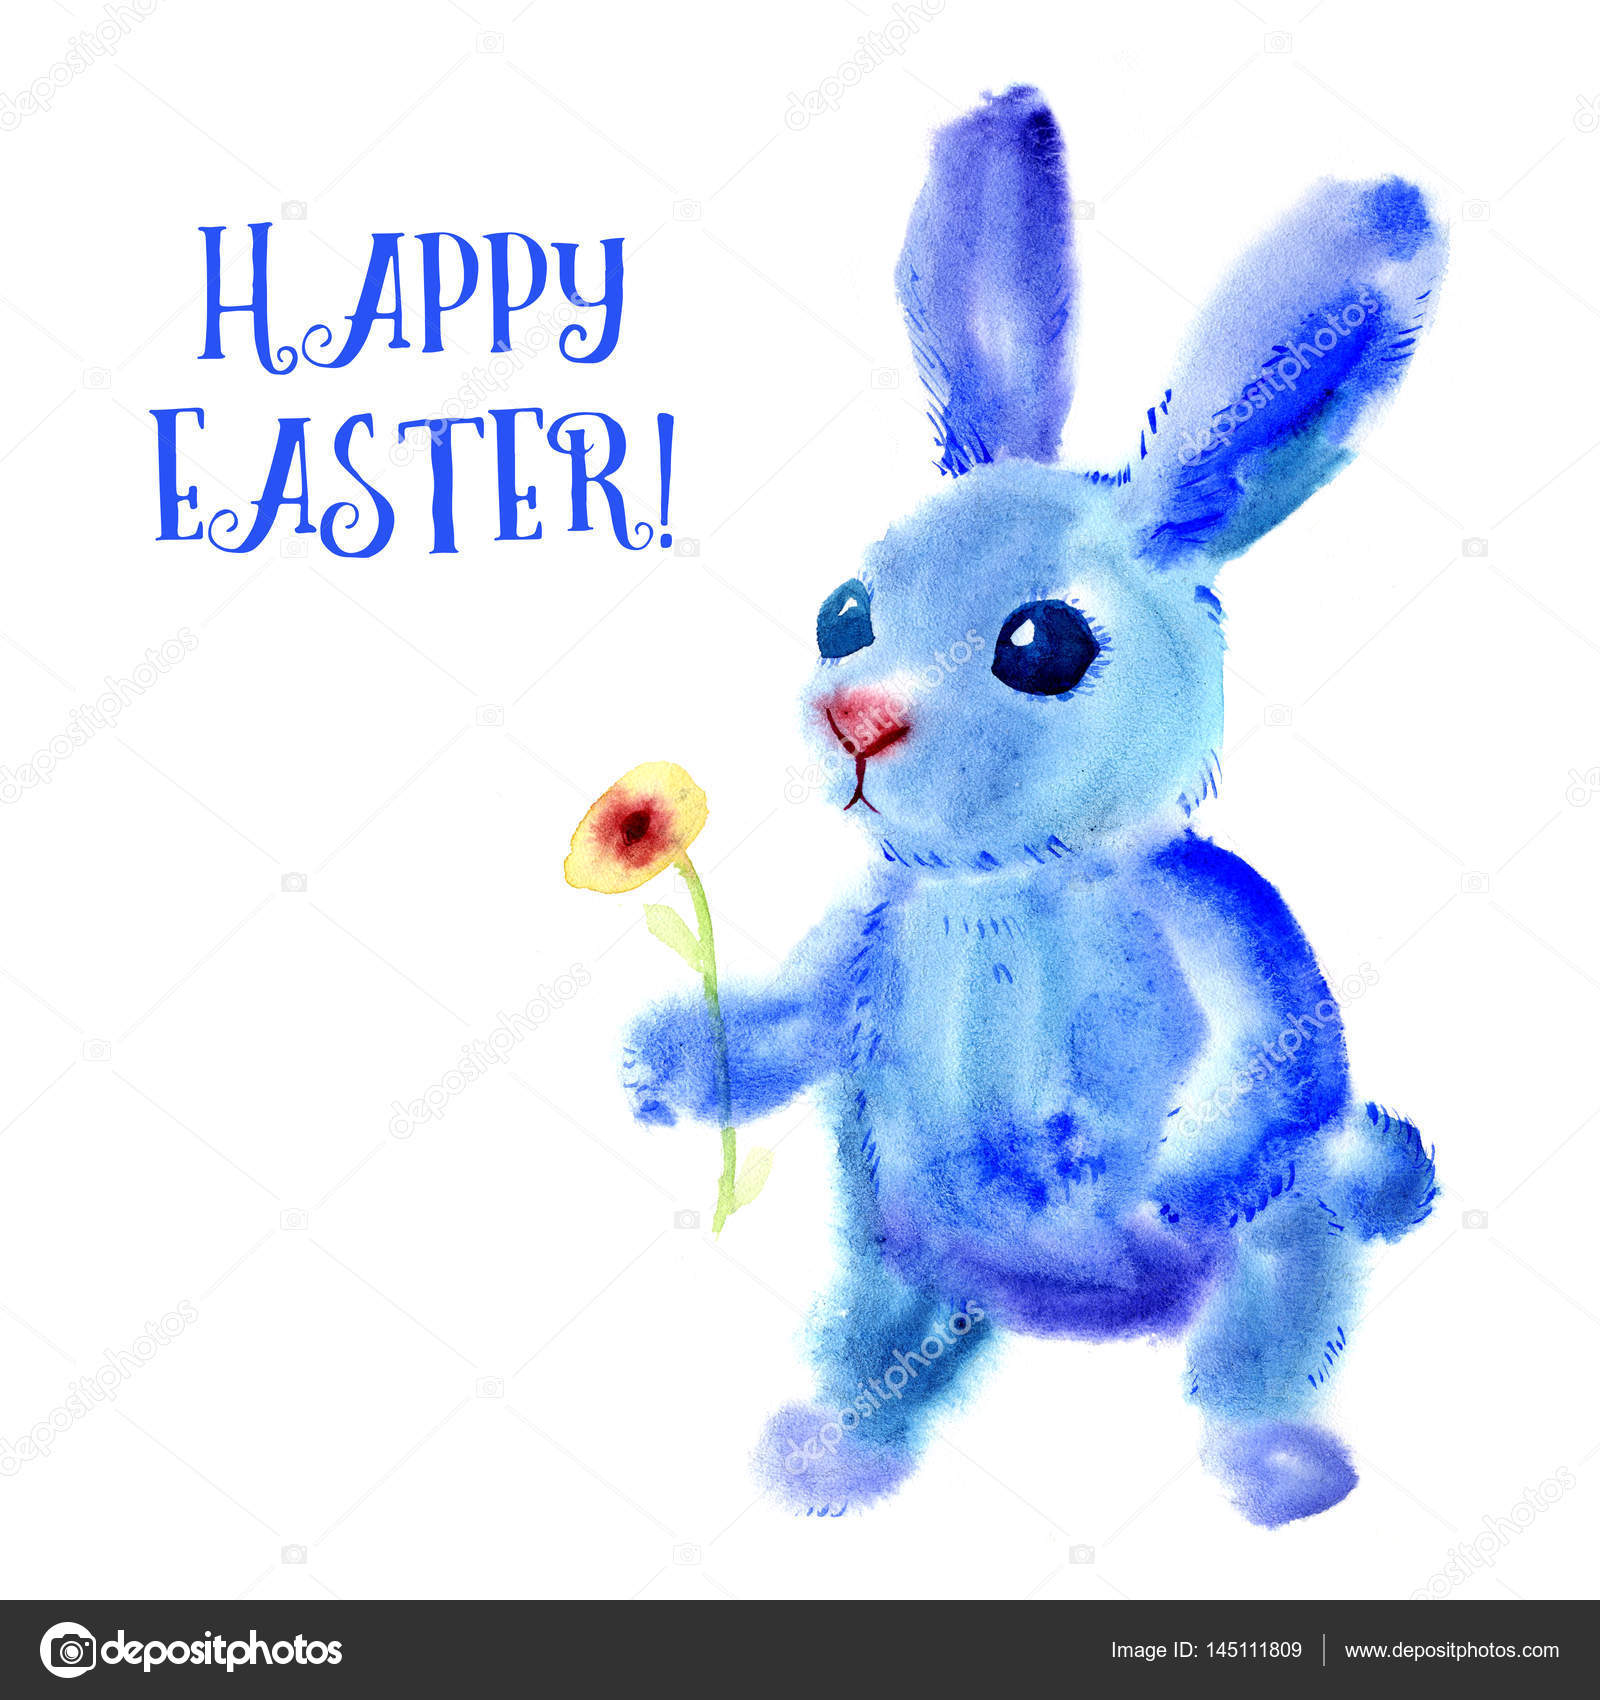 Blue easter bunny watercolor greeting card print stock photo watercolor greeting card print on t shirt bag bag smartphone religious symbol of spring holiday easter photo by belopoppa kristyandbryce Choice Image